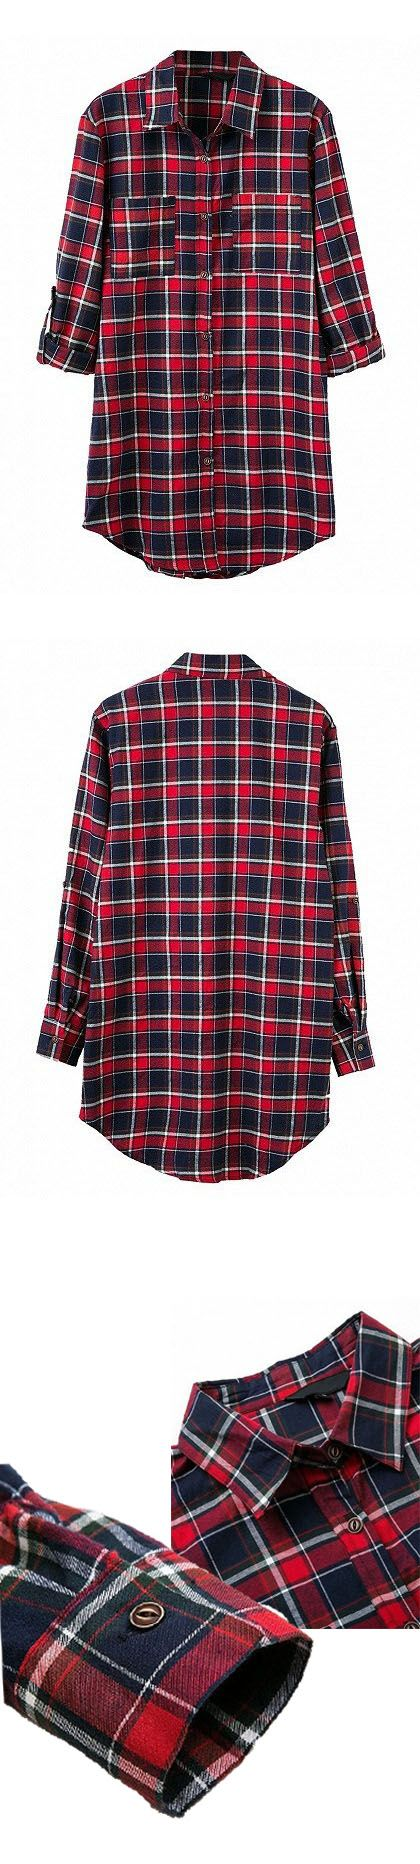 Multicolor Plaid Pocket Roll-up Sleeve Shirt, very simple designs are always not out of date. For those like simple design fashions.